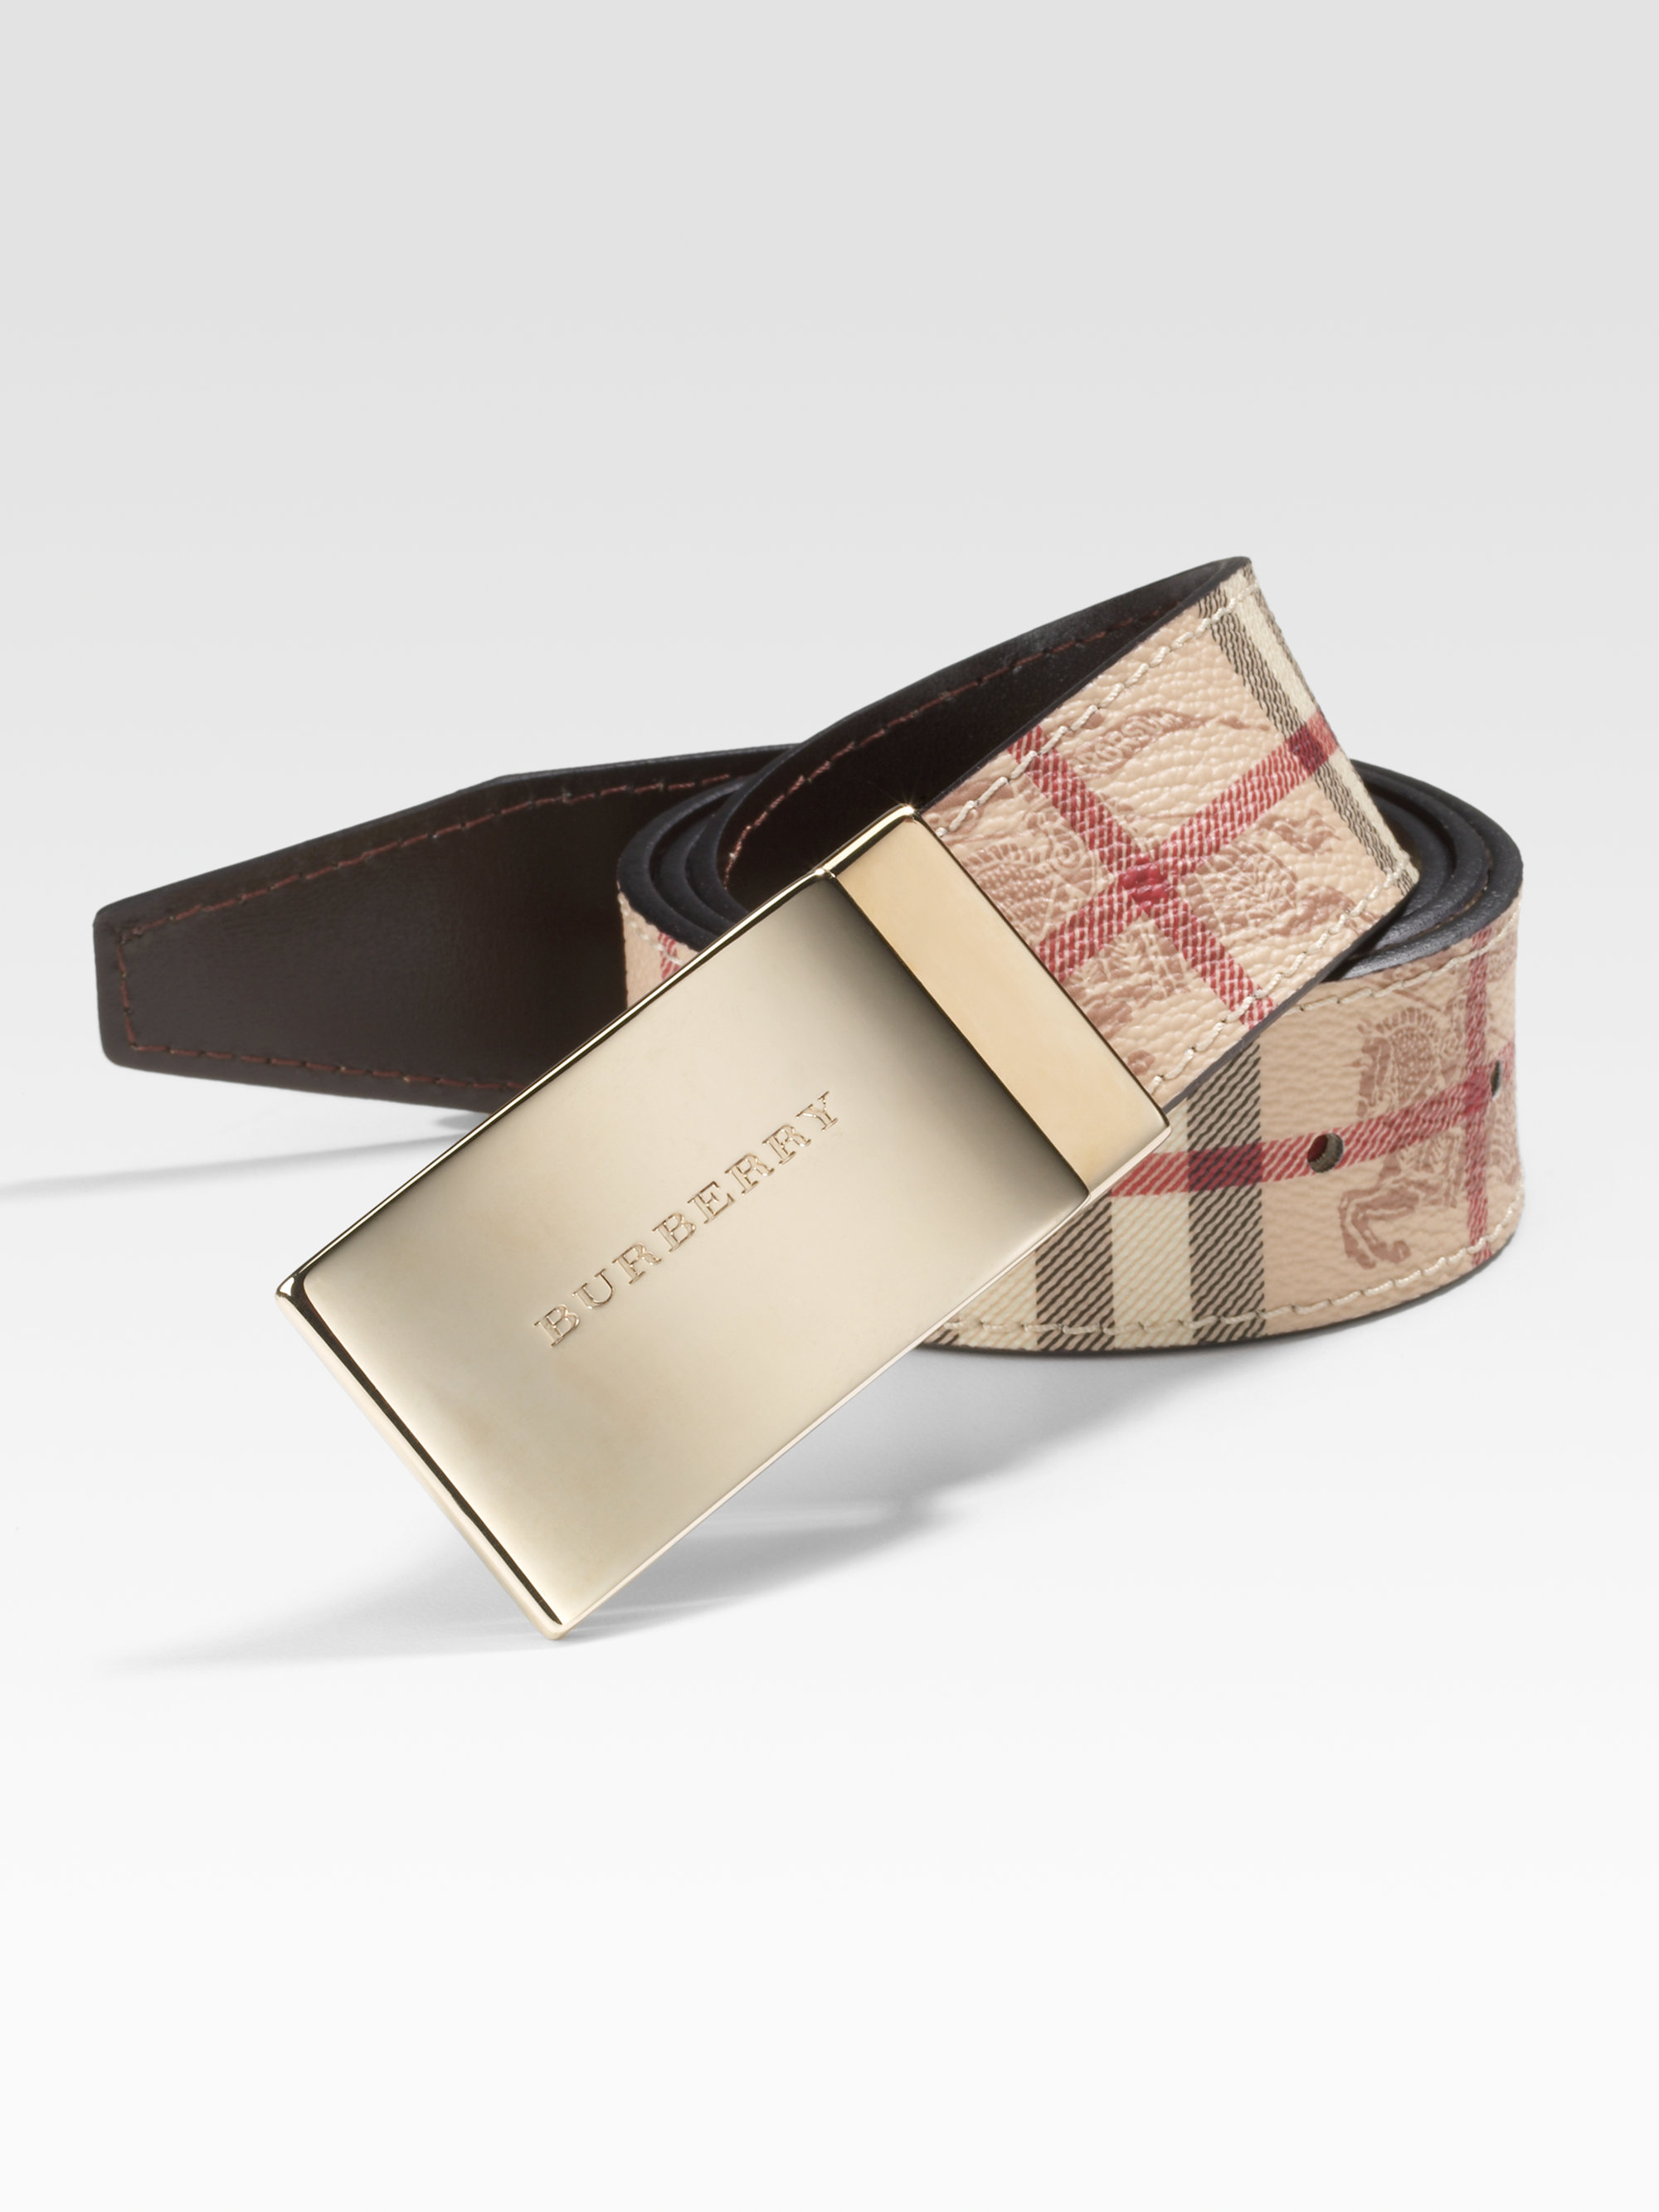 Burberry Sloane Checked Belt In Natural For Men Lyst